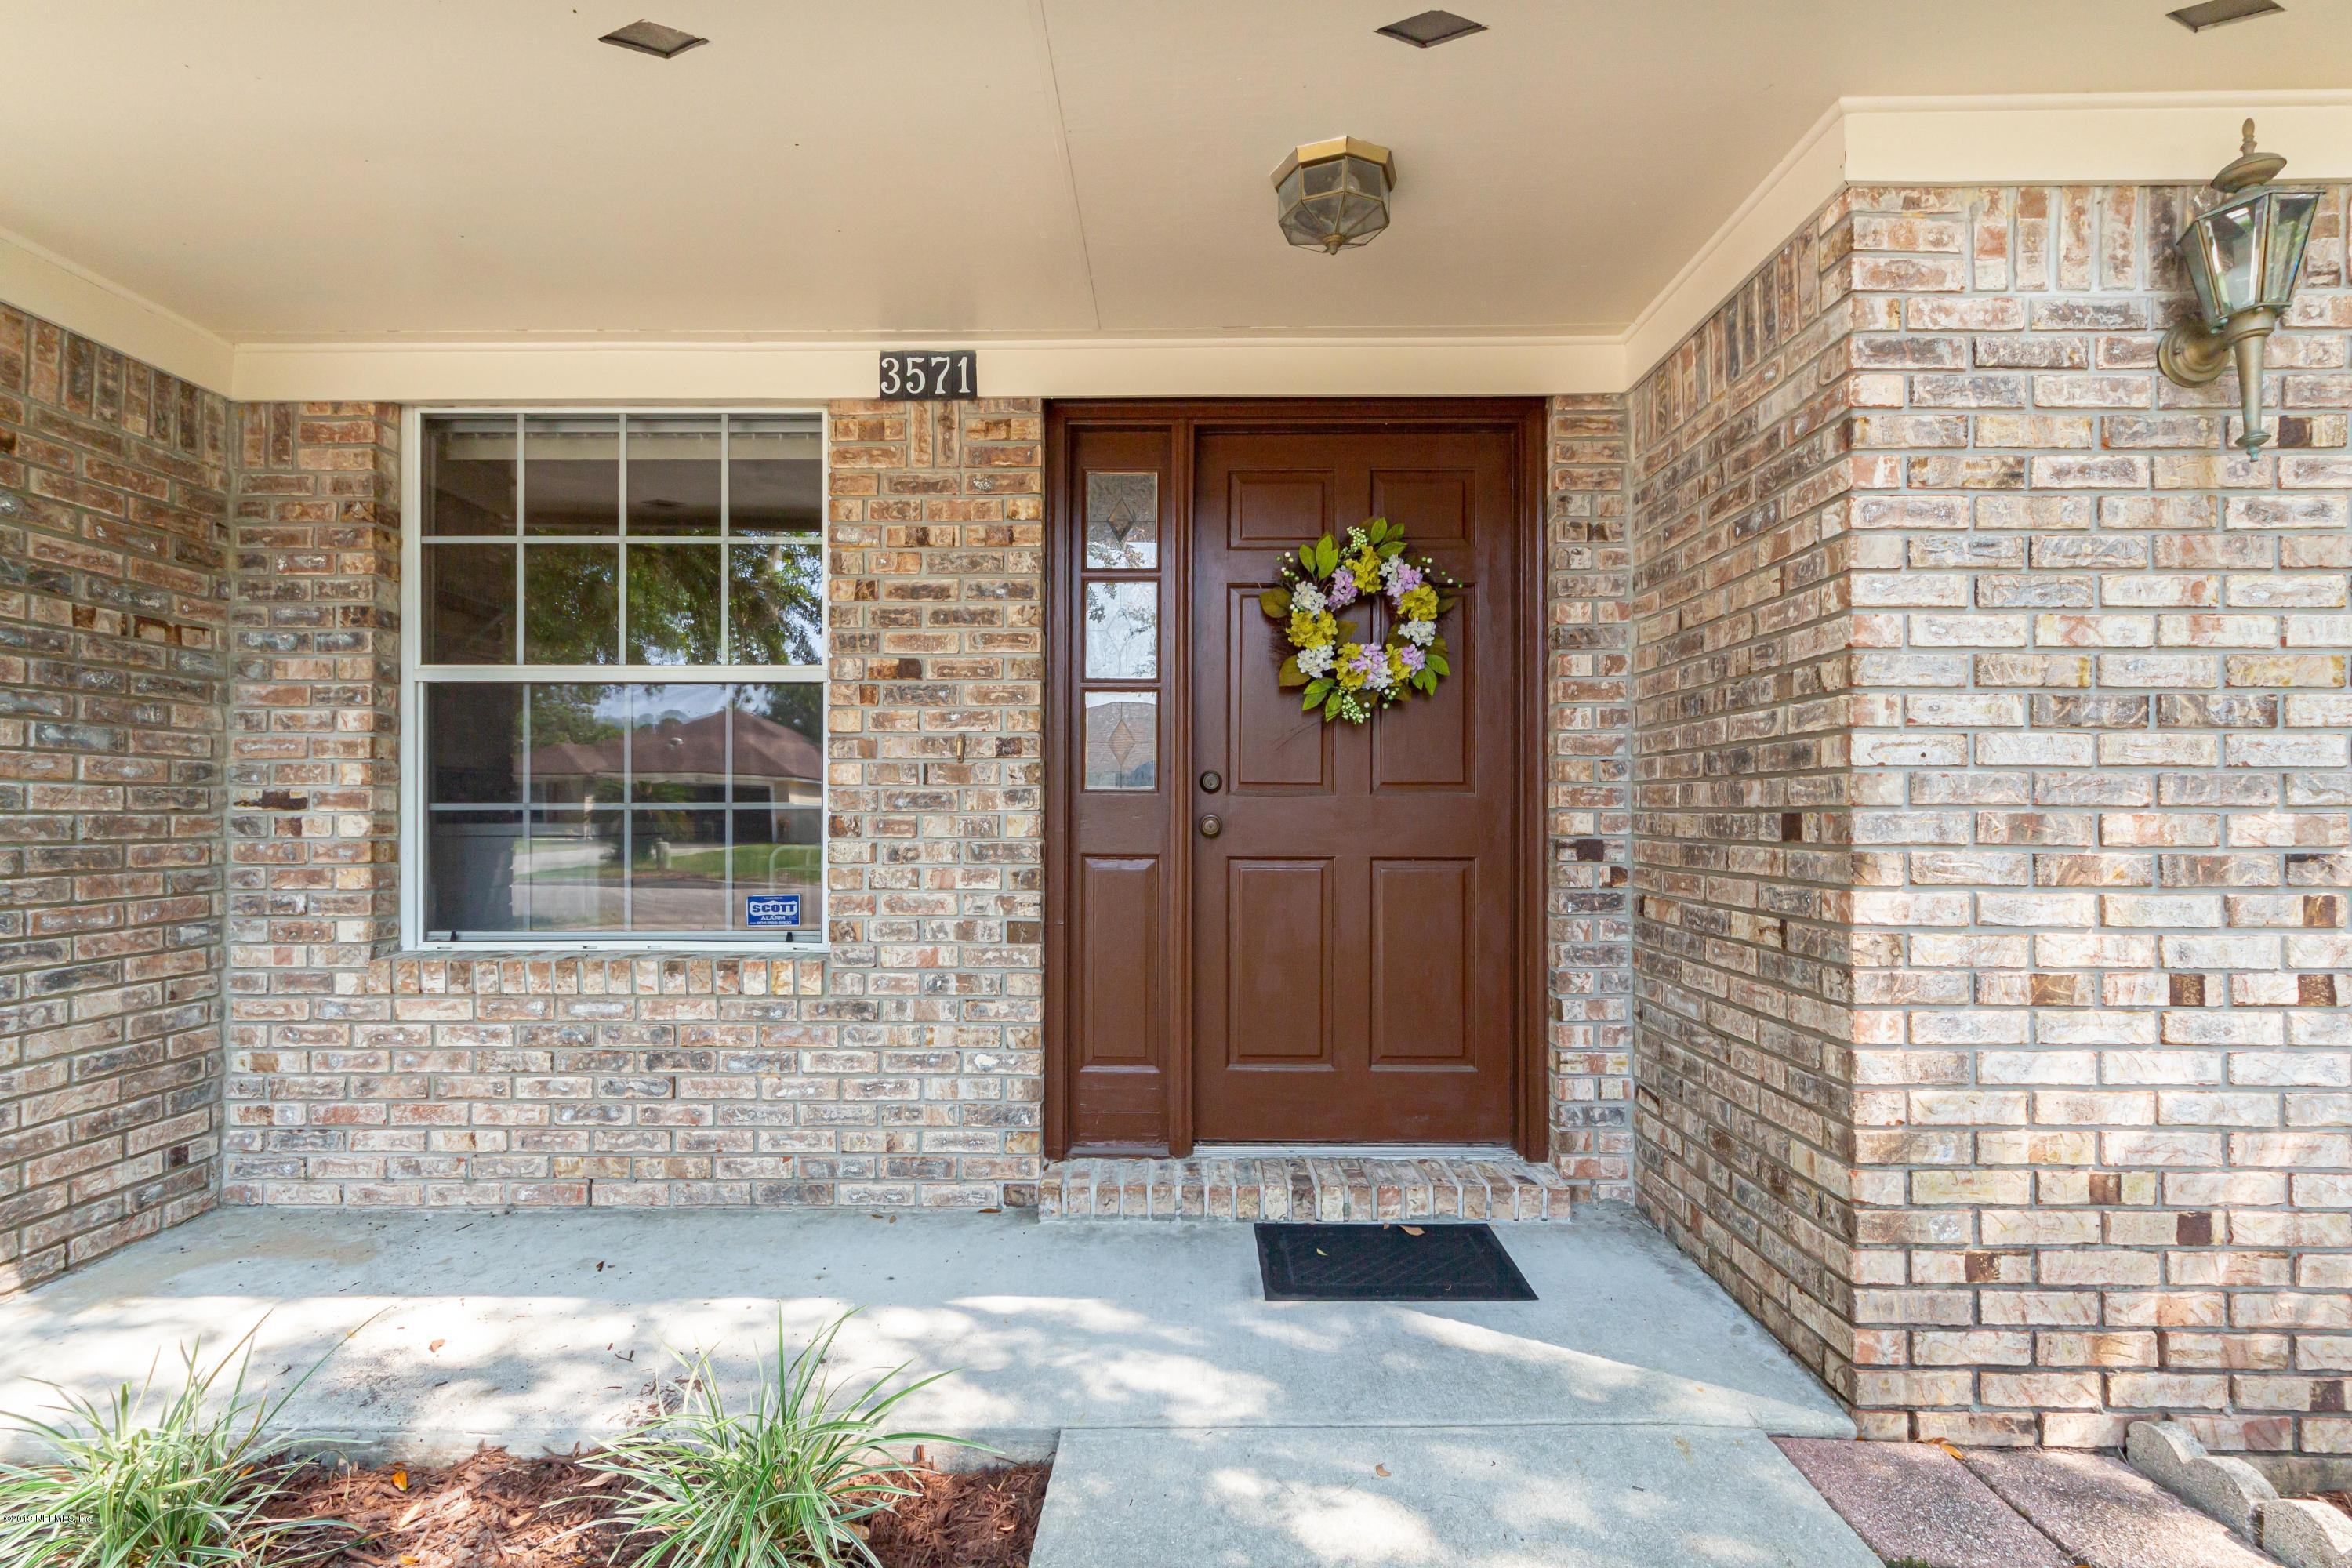 3571 LAZY WILLOW CT JACKSONVILLE - 3